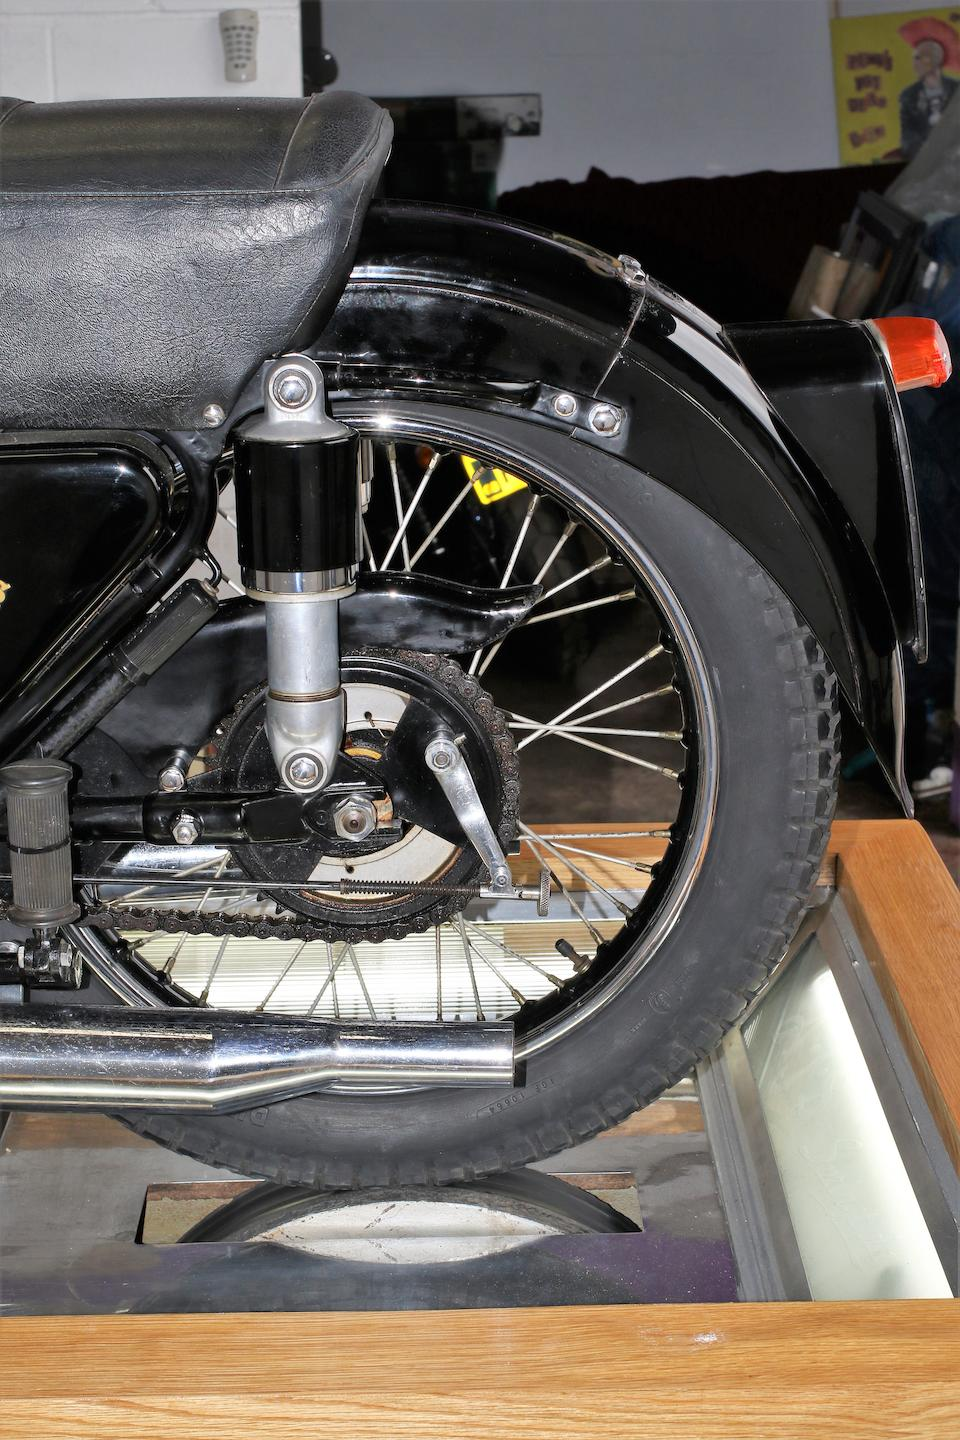 1952 AJS 498cc Model 20 Springtwin Cutaway Model Frame no. to be advised Engine no. R9/4